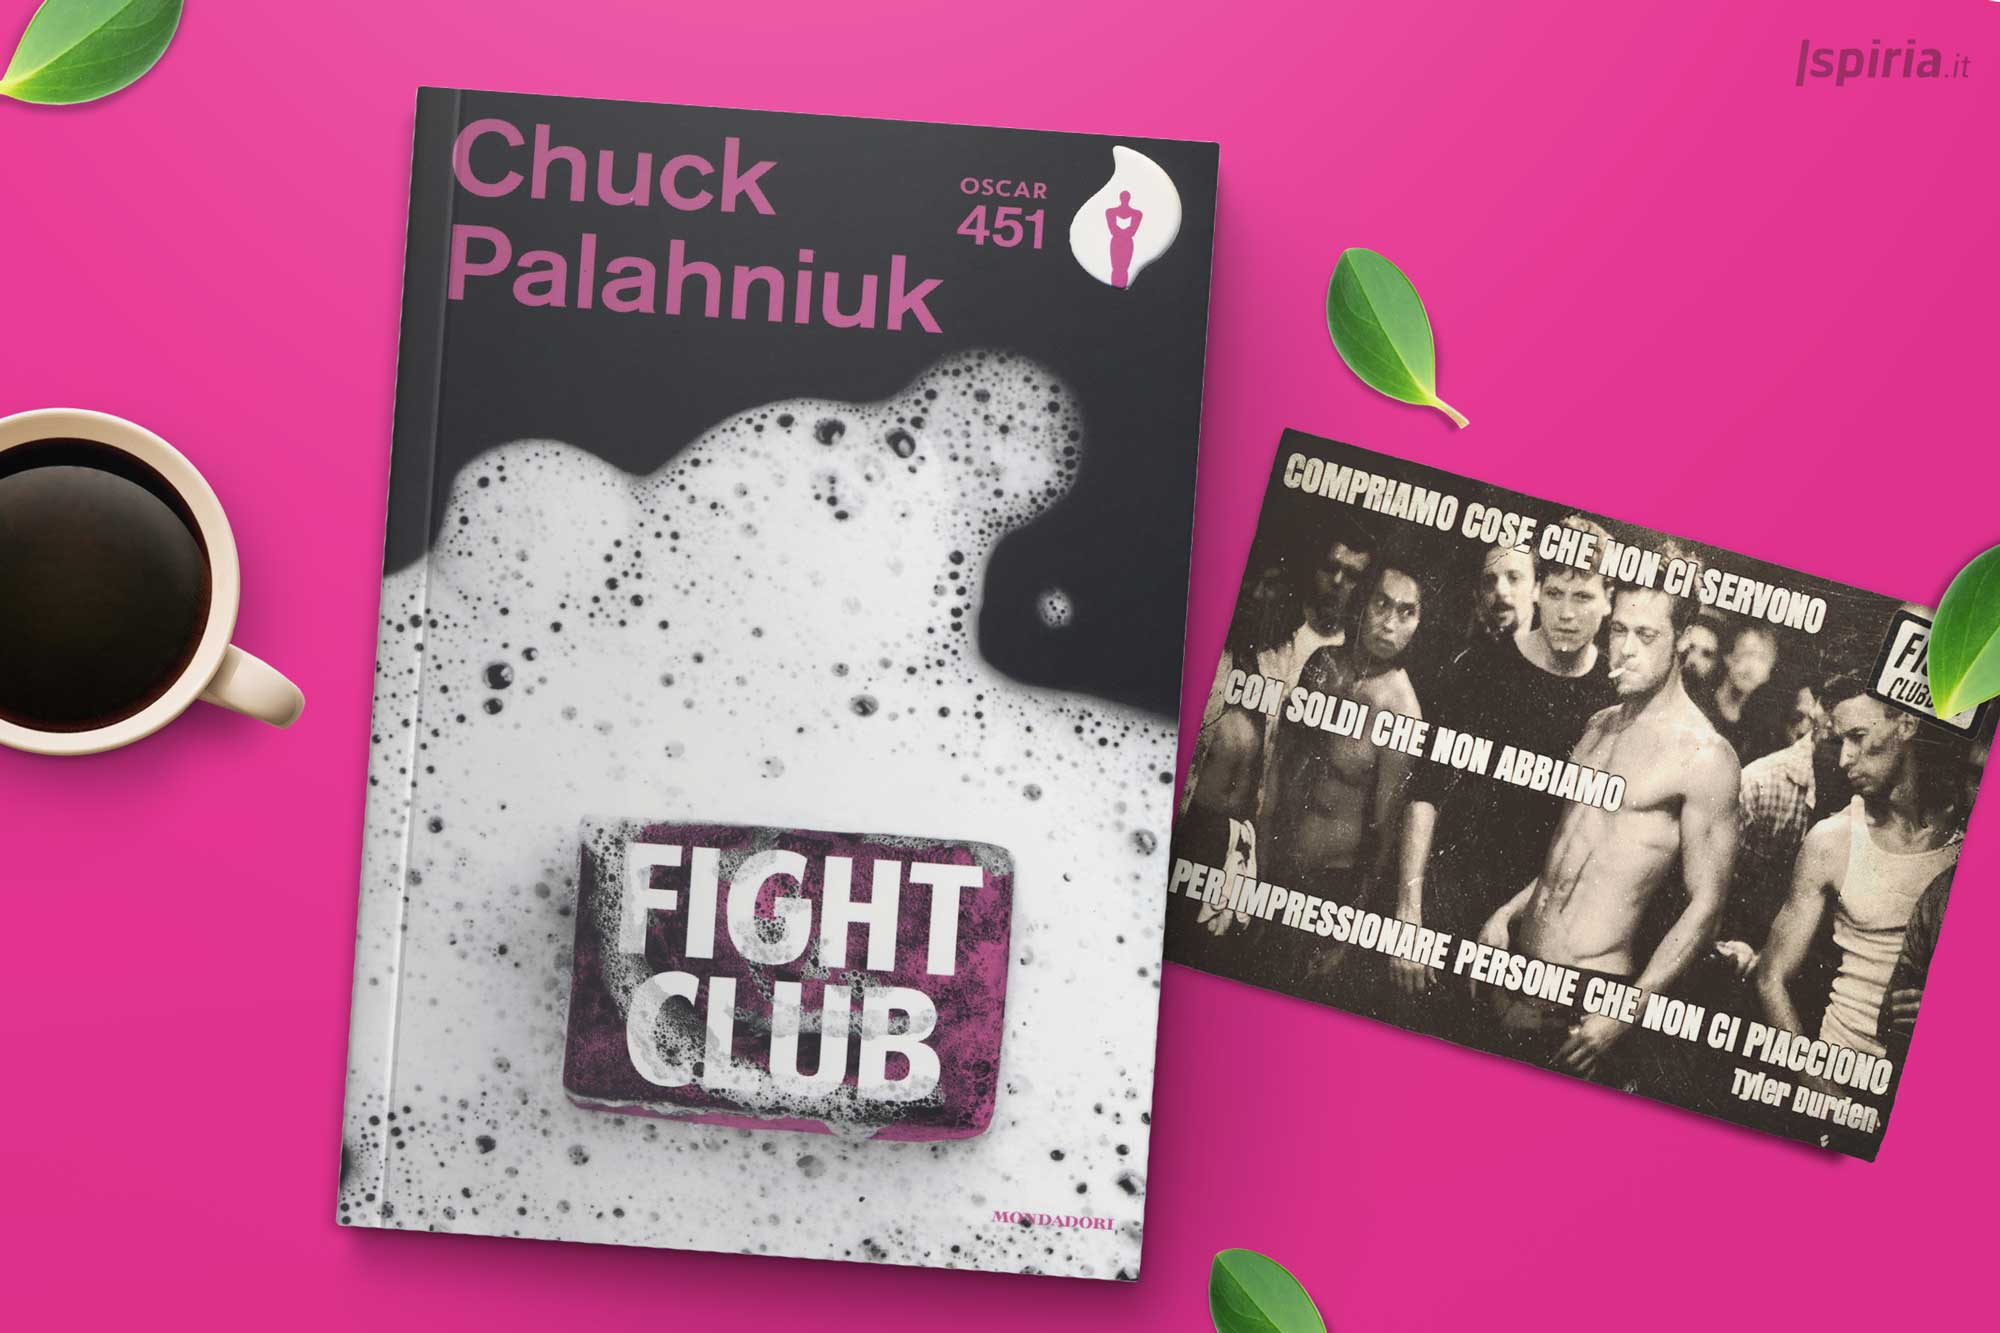 Migliori-libri-per-adolescenti-fight-club